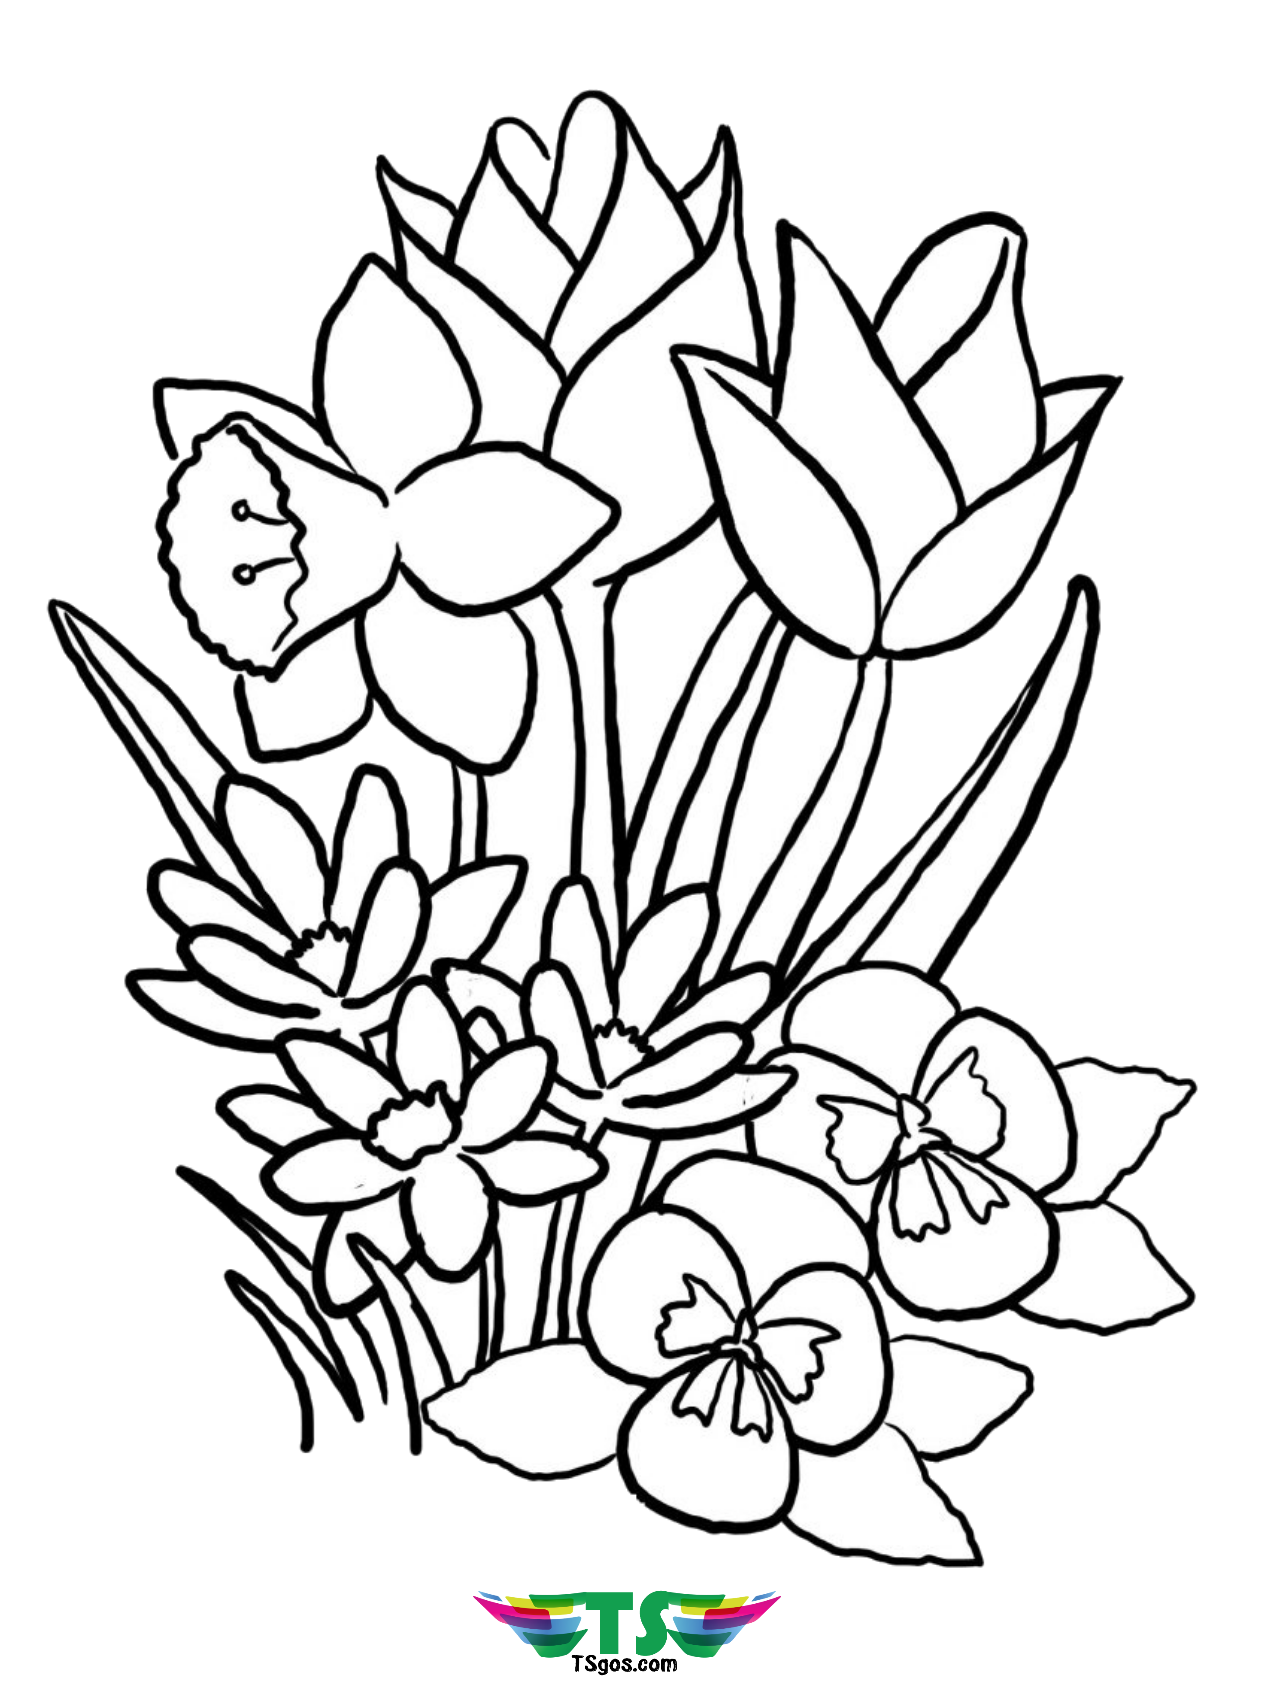 flower coloring sheet free download to print beautiful spring flower coloring coloring flower sheet